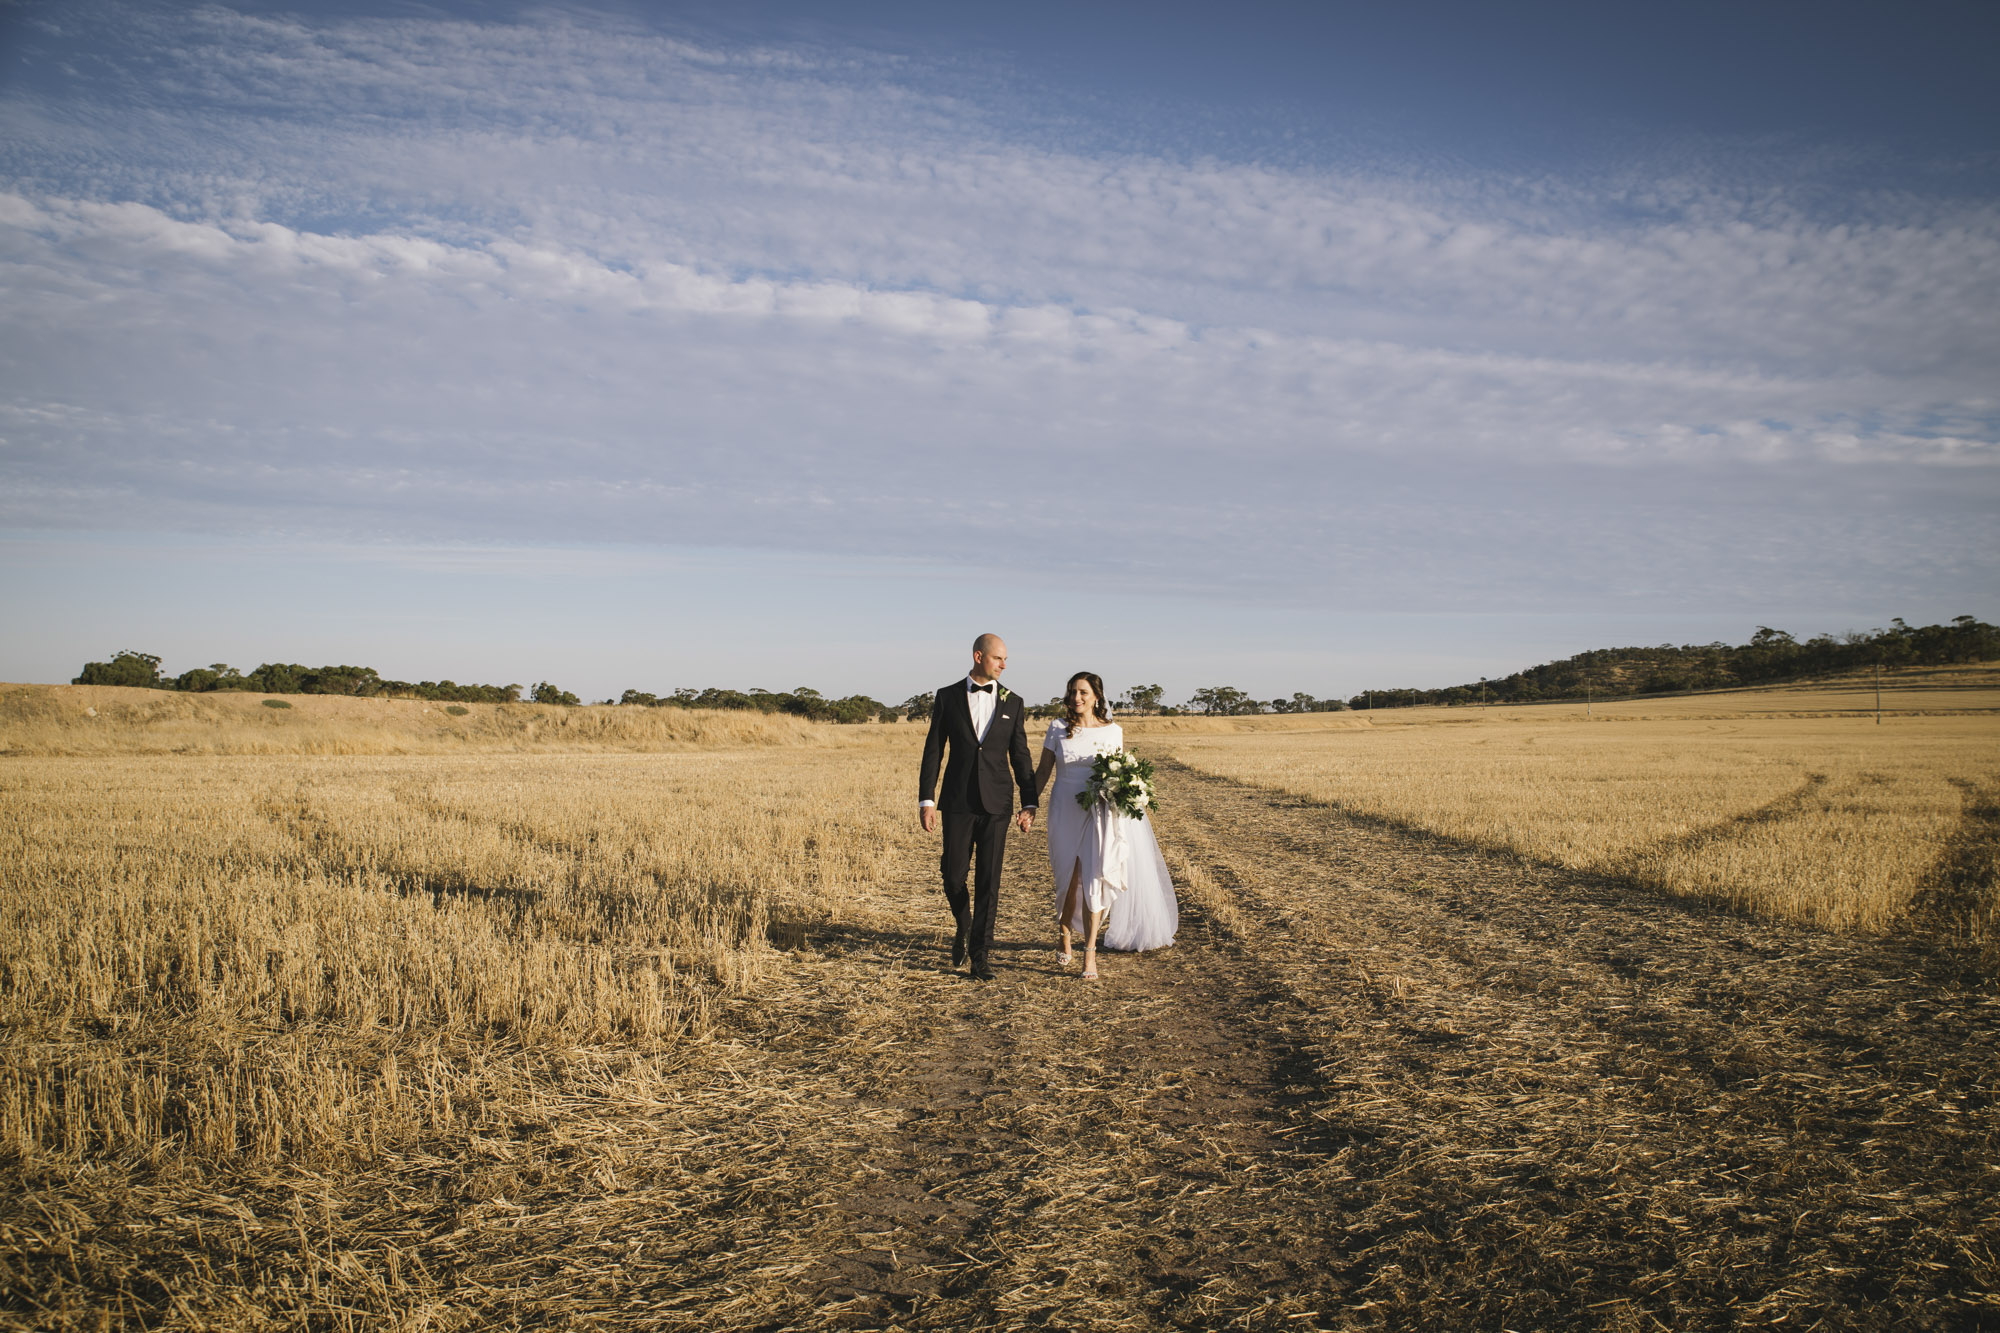 Angie-Roe-Photography-Wedding-Perth-Northam-Wheatbelt-Country-Rural (7).jpg